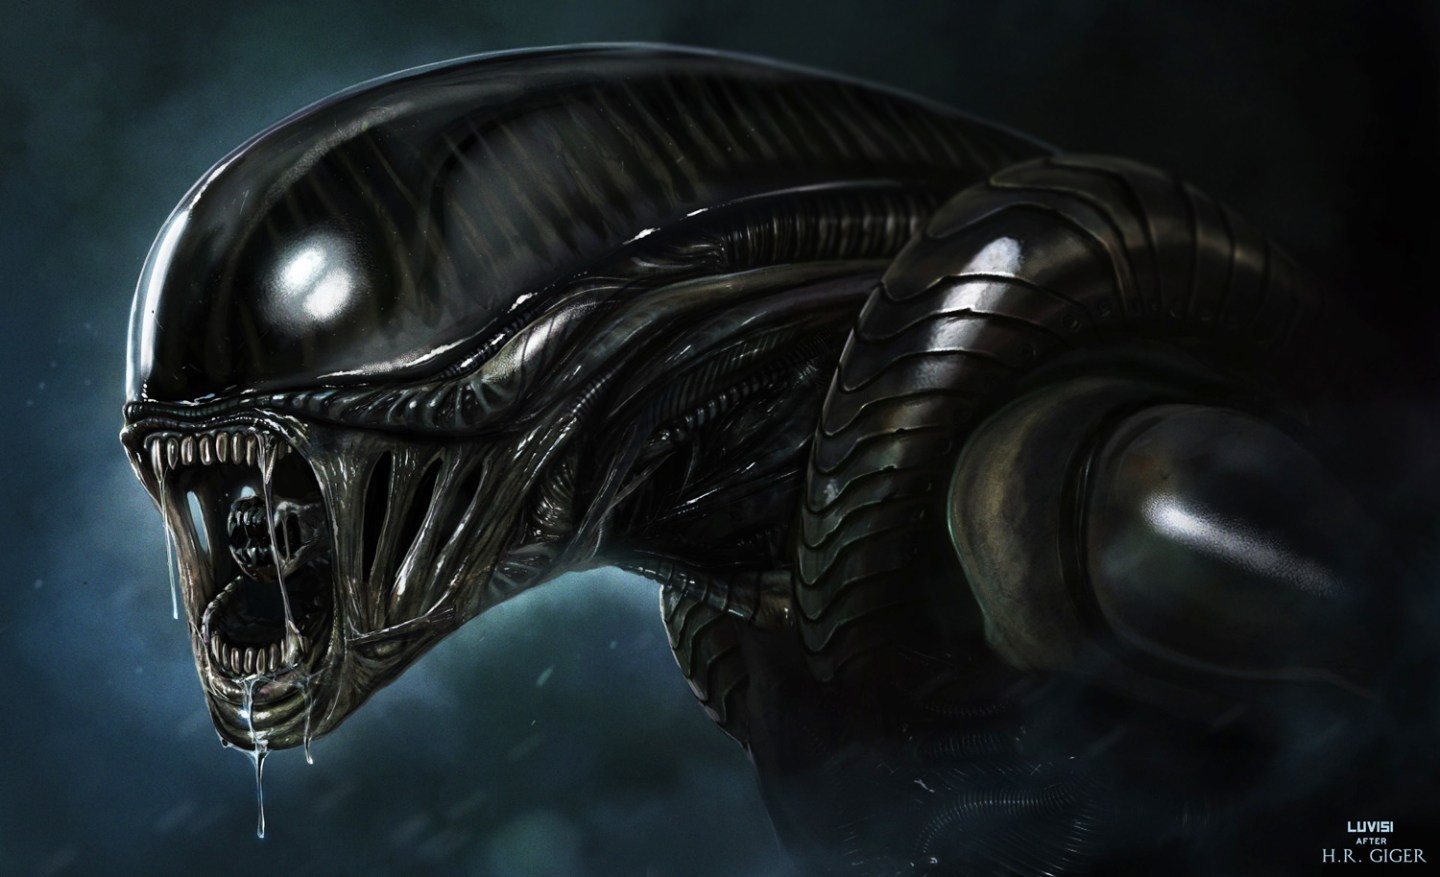 alien___h_r__giger_bar_usa